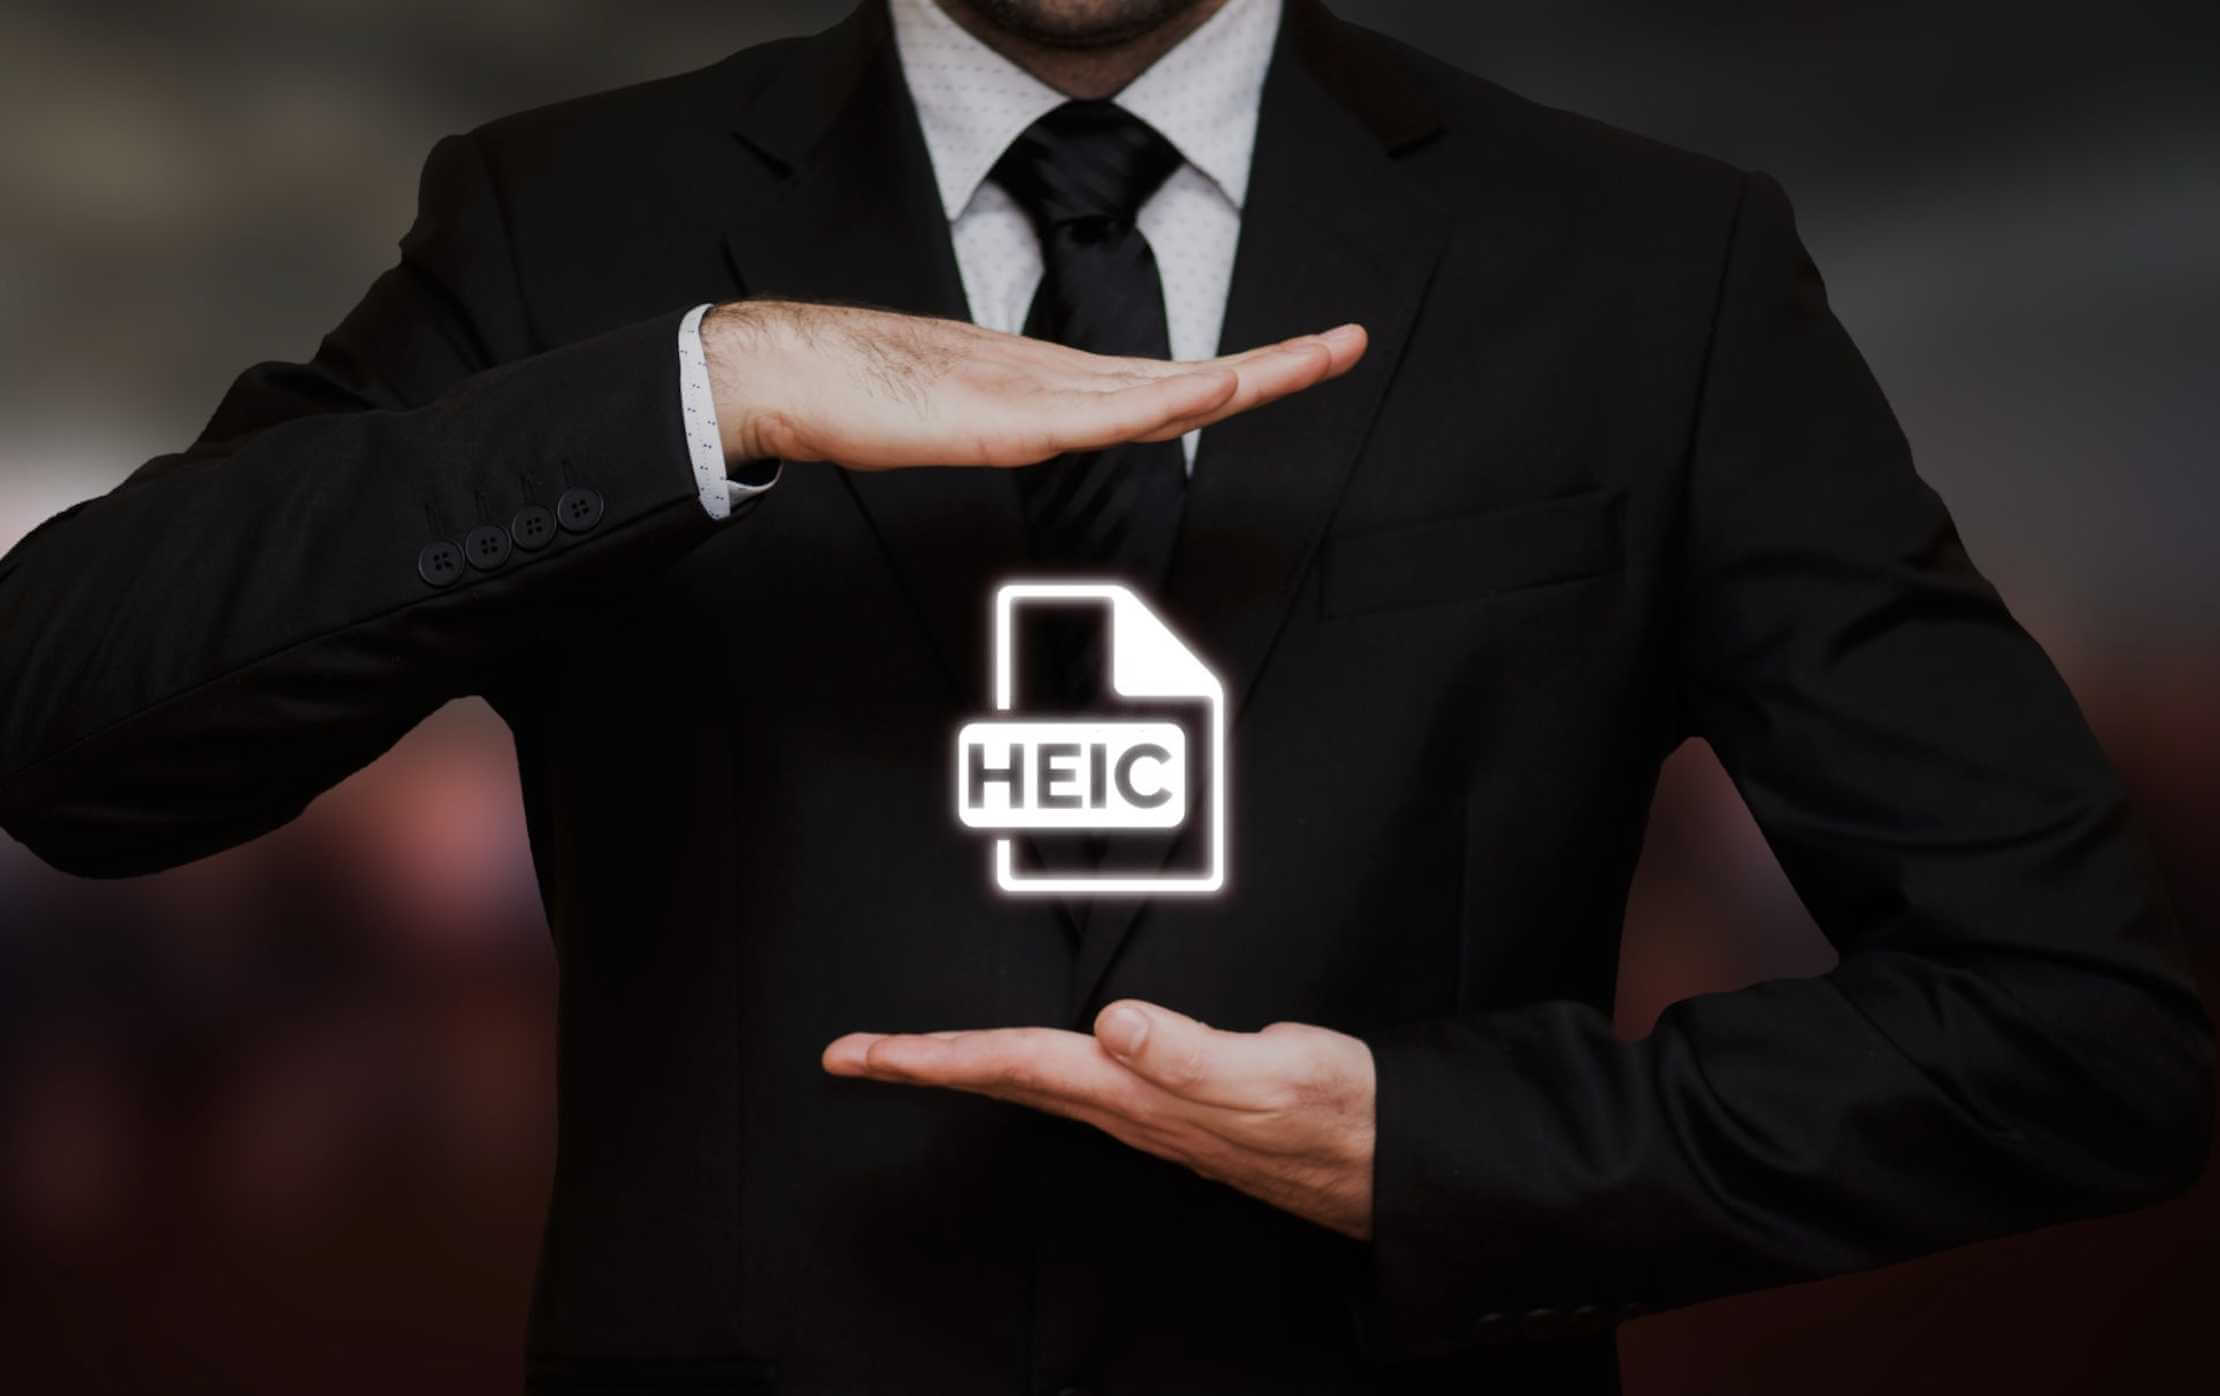 What is an HEIC file